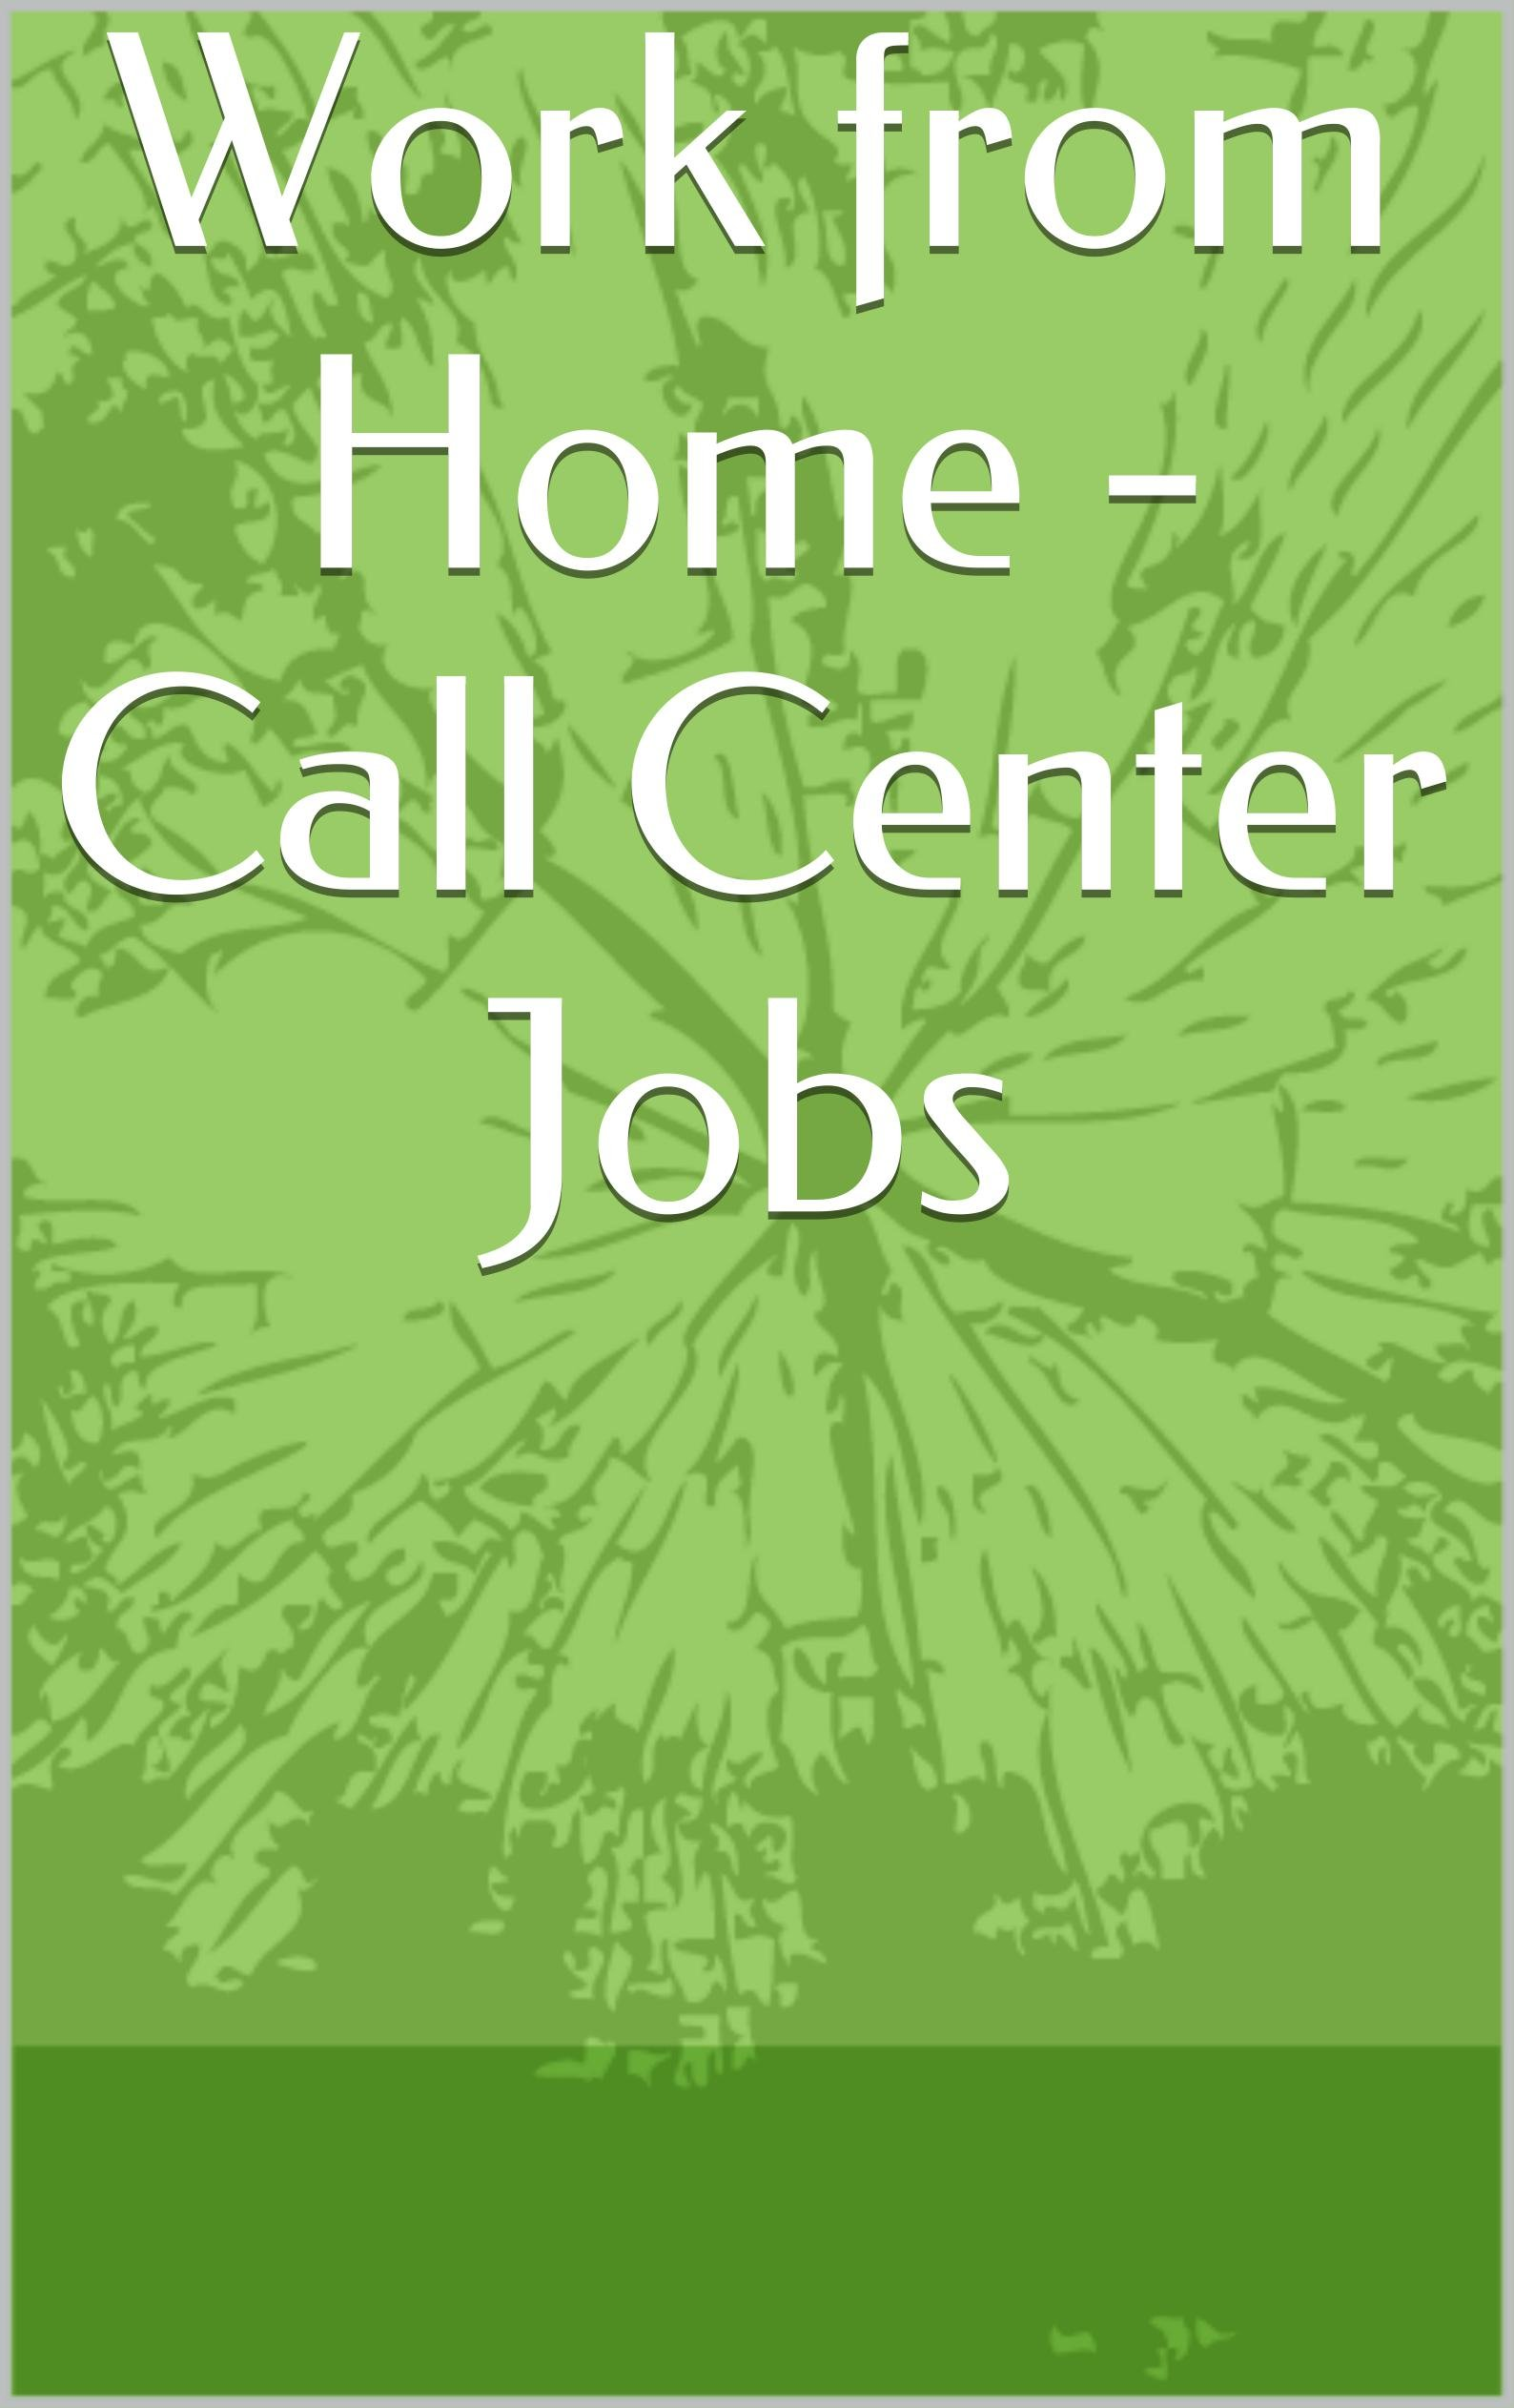 Work from Home - Call Center Jobs